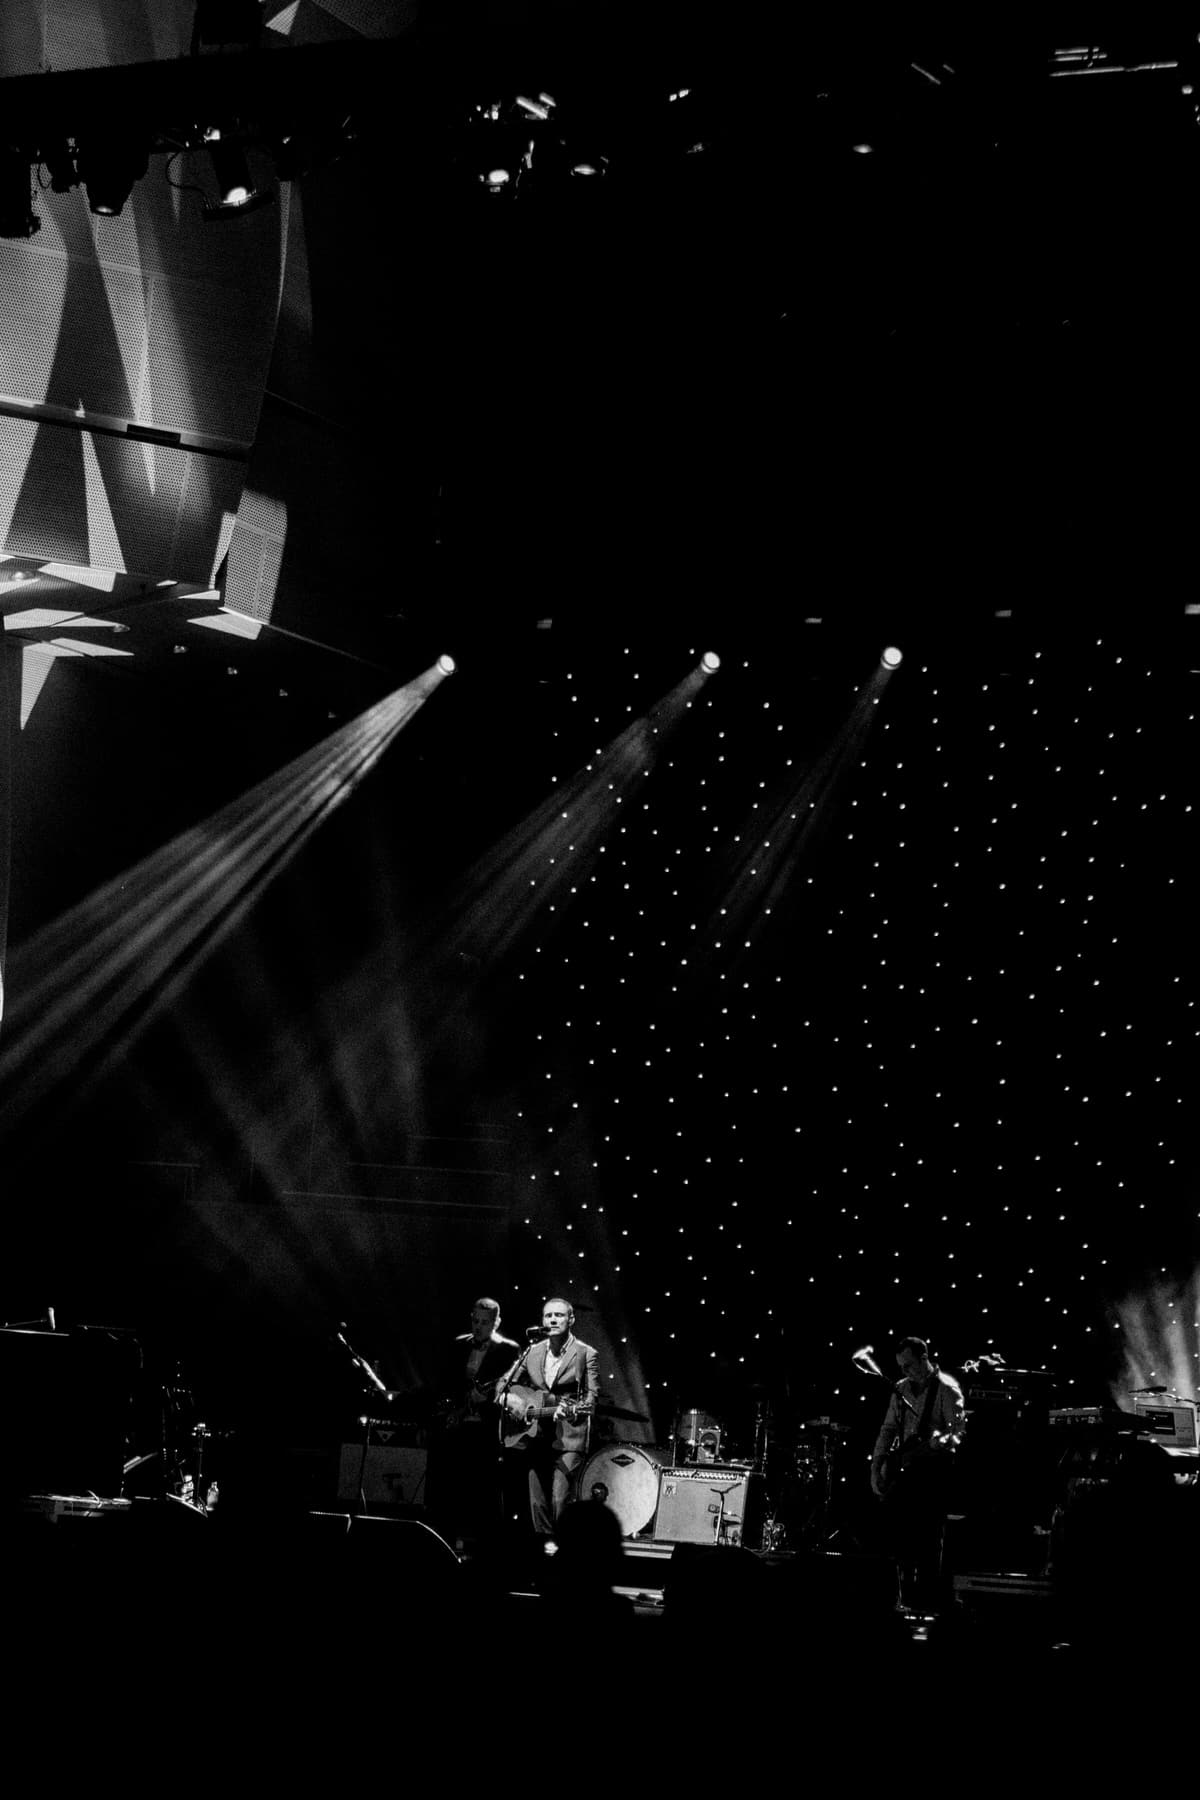 David-Gray-Ray-LaMontagne-concert-Jay-Pritzker-Paviilion-Chicago-Illinois-black-and-white-fine-art-photography-by-Studio-L-photographer-Laura-Schneider-_3697